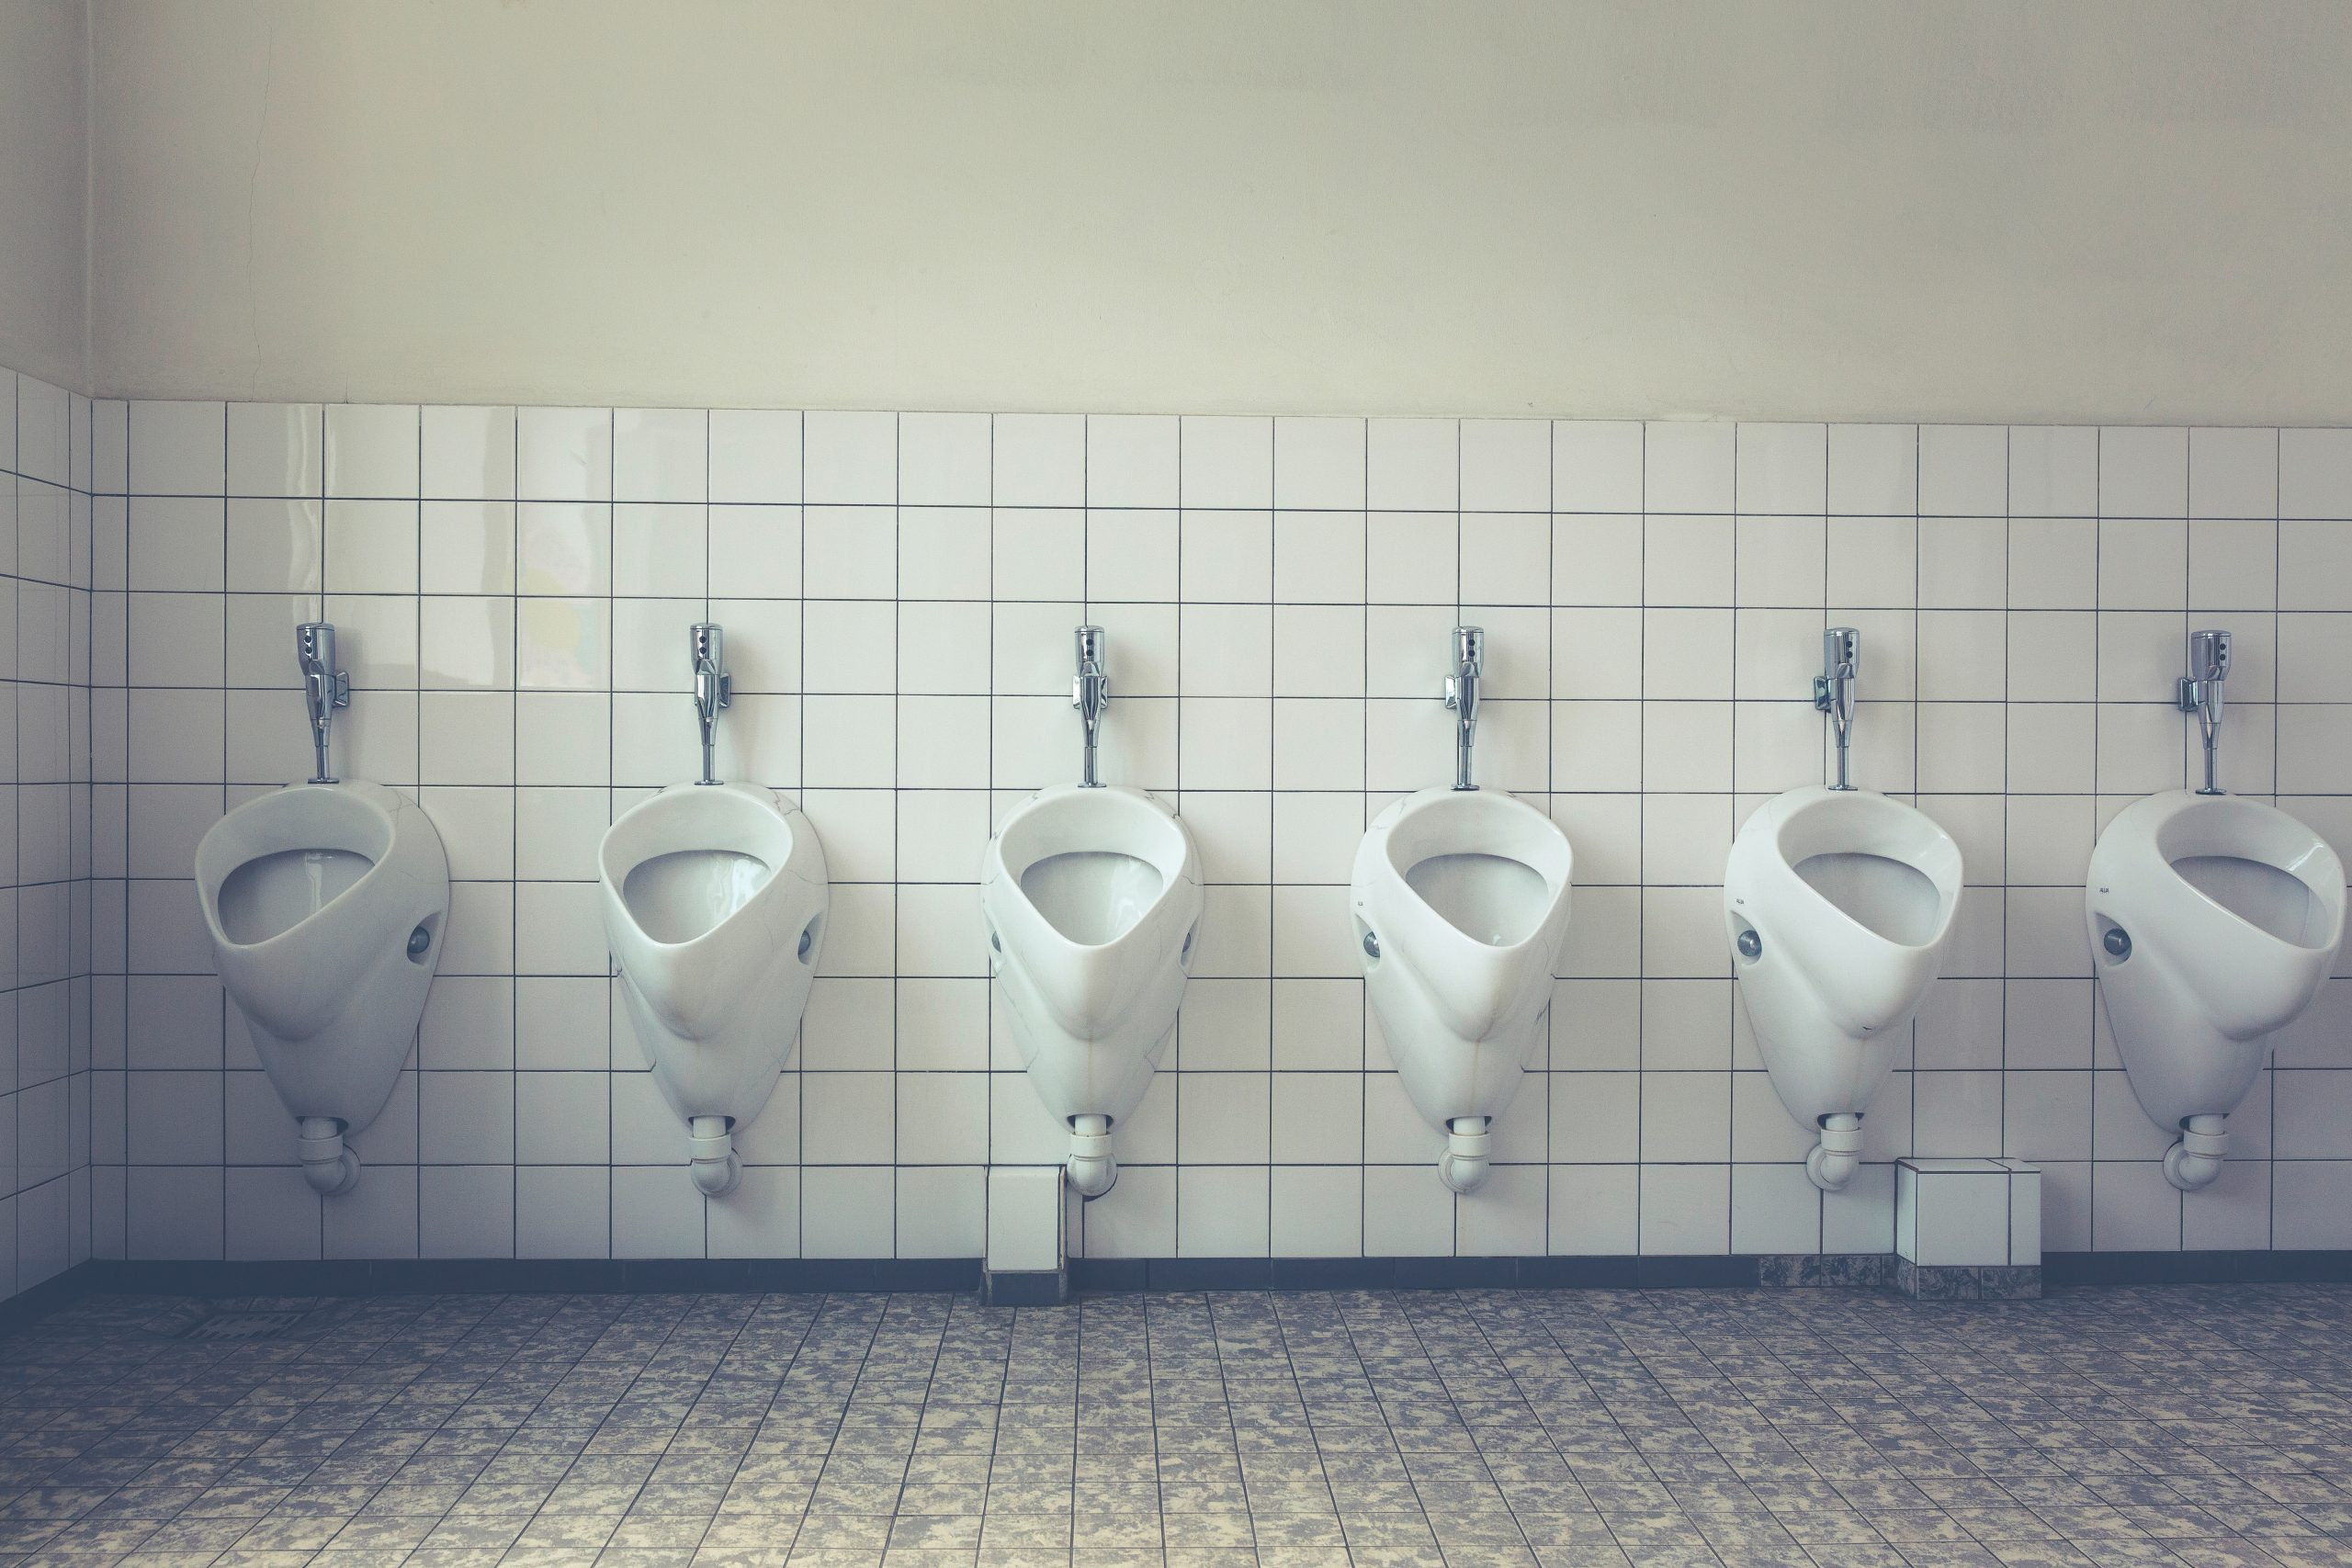 How to Remove Urine Odor From Bathrooms